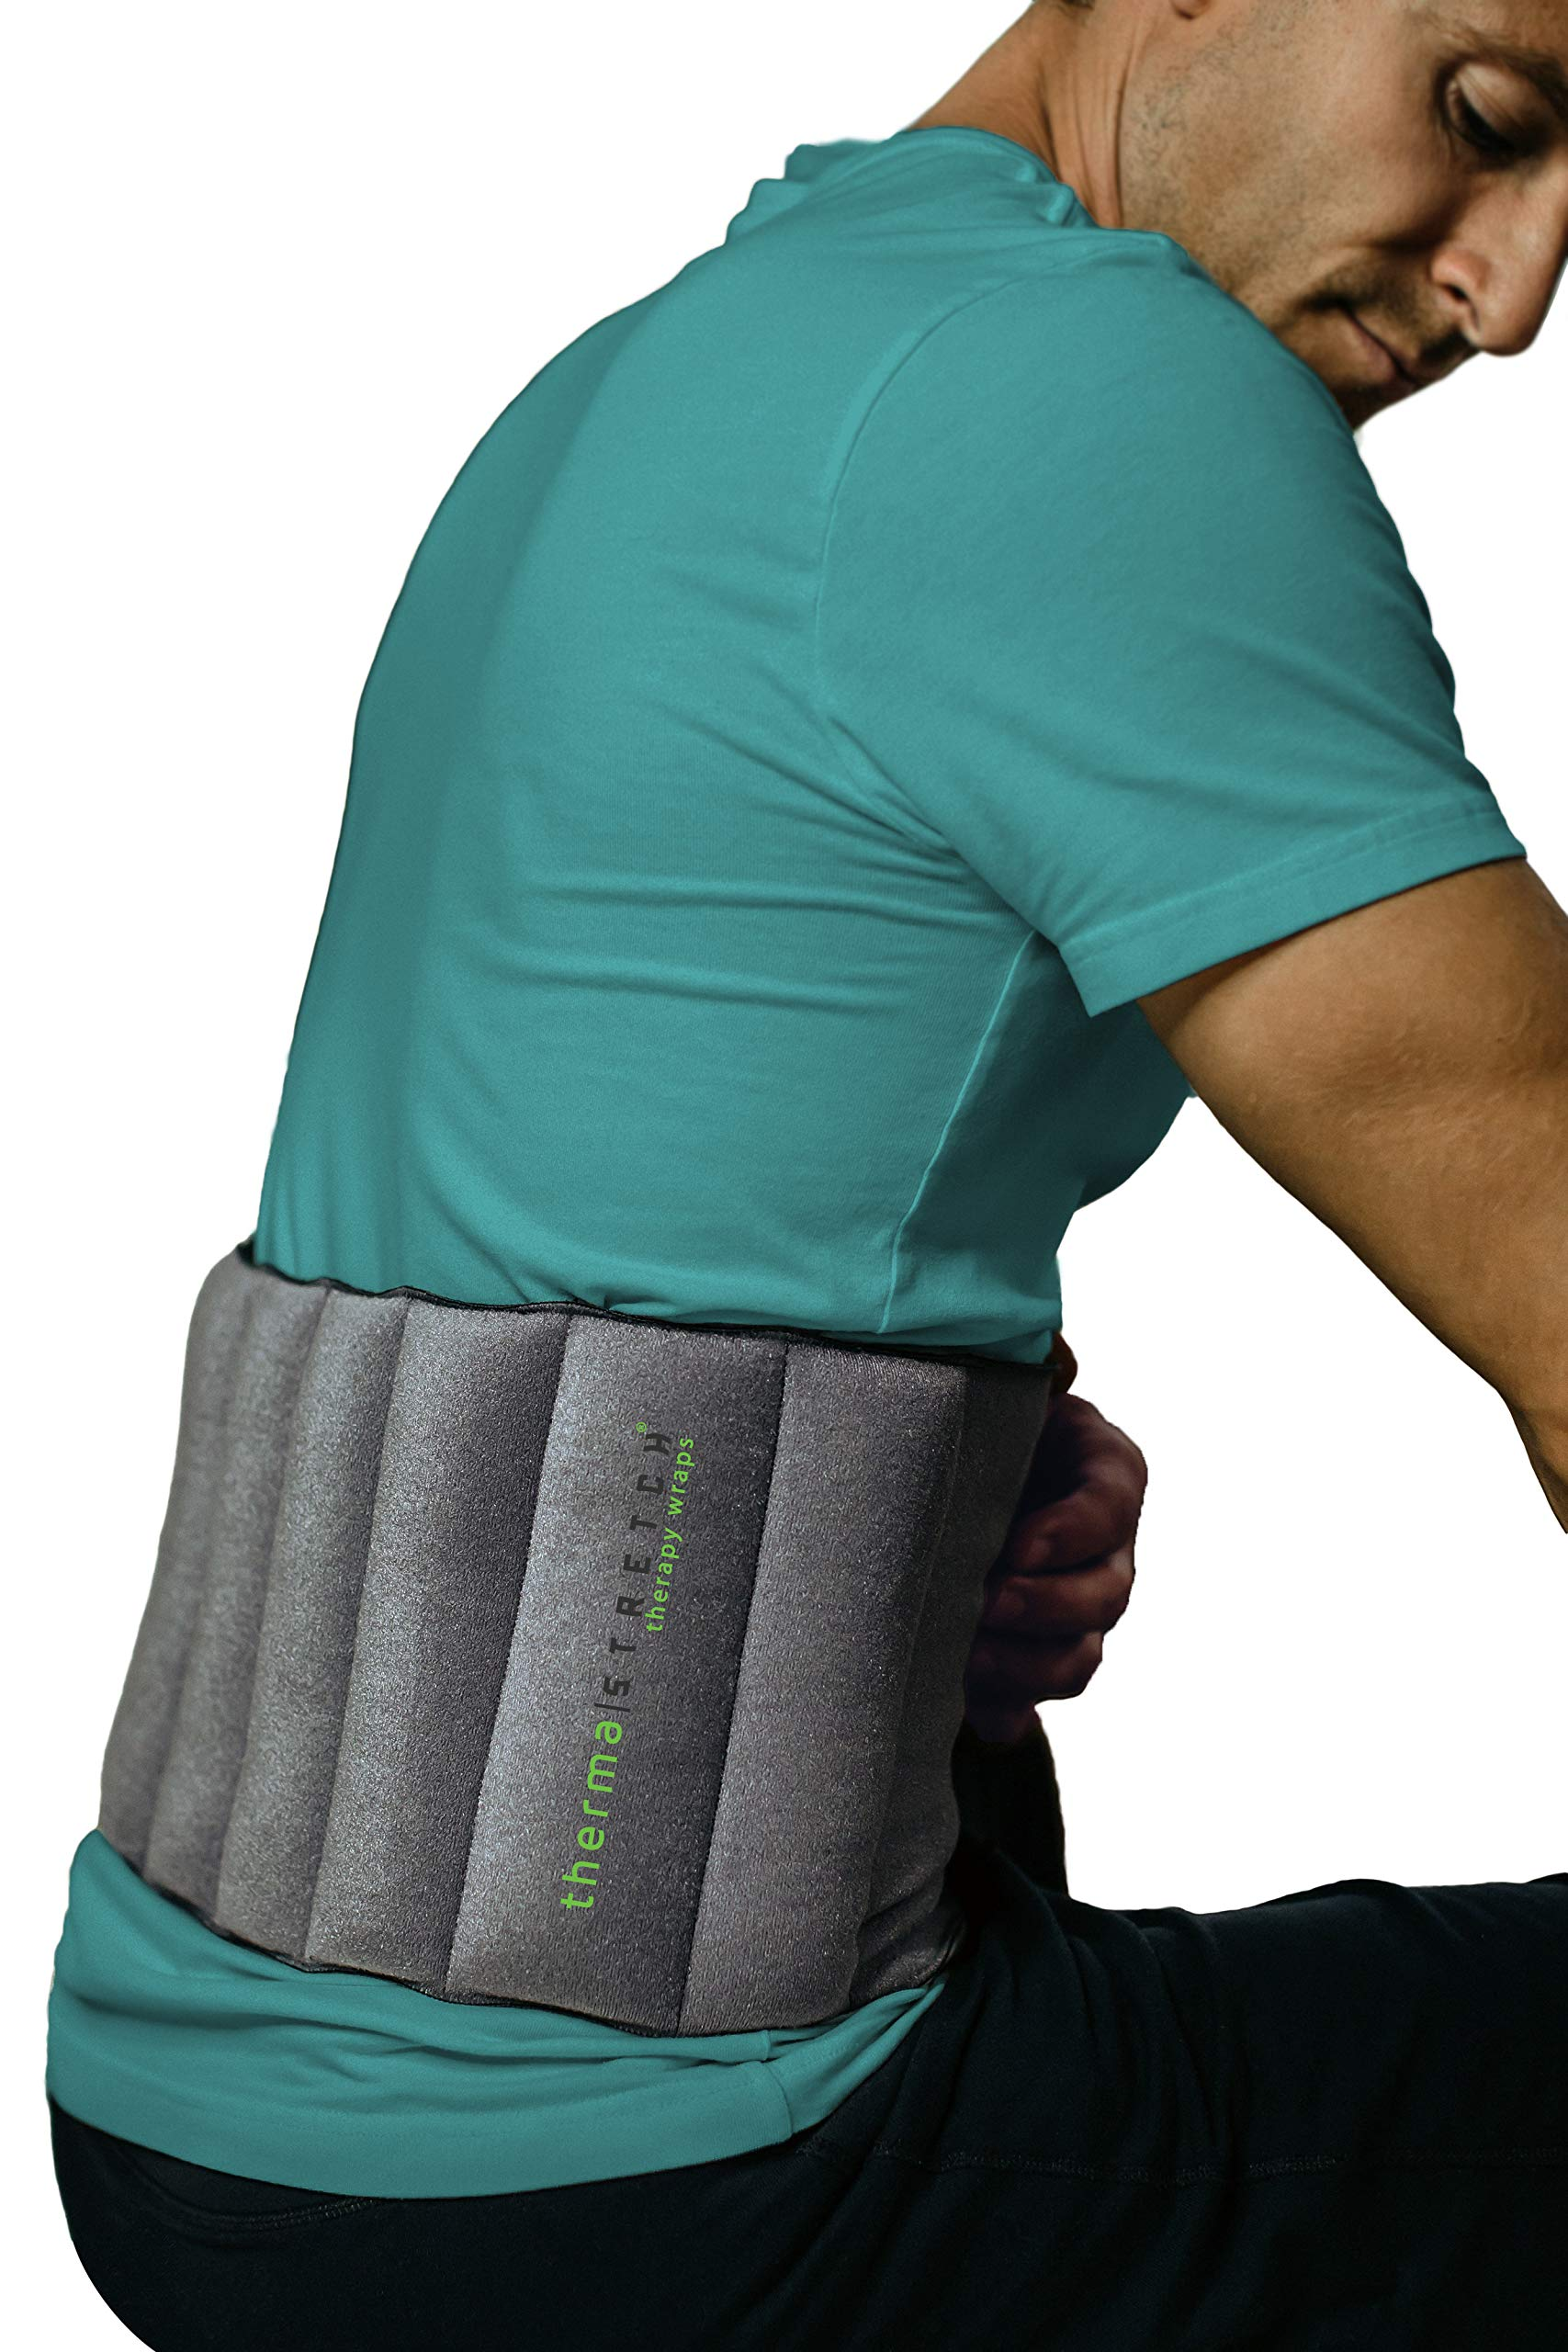 THERMA-STRETCH Back Heating Pad - Microwaveable Lumbar Wrap for Herniated Disc, Sciatica Arthritis, Back Muscle Pain Relief and Recovery - Natural, Adjustable and Stretchable Therapy that STAYS by Therma-Stretch